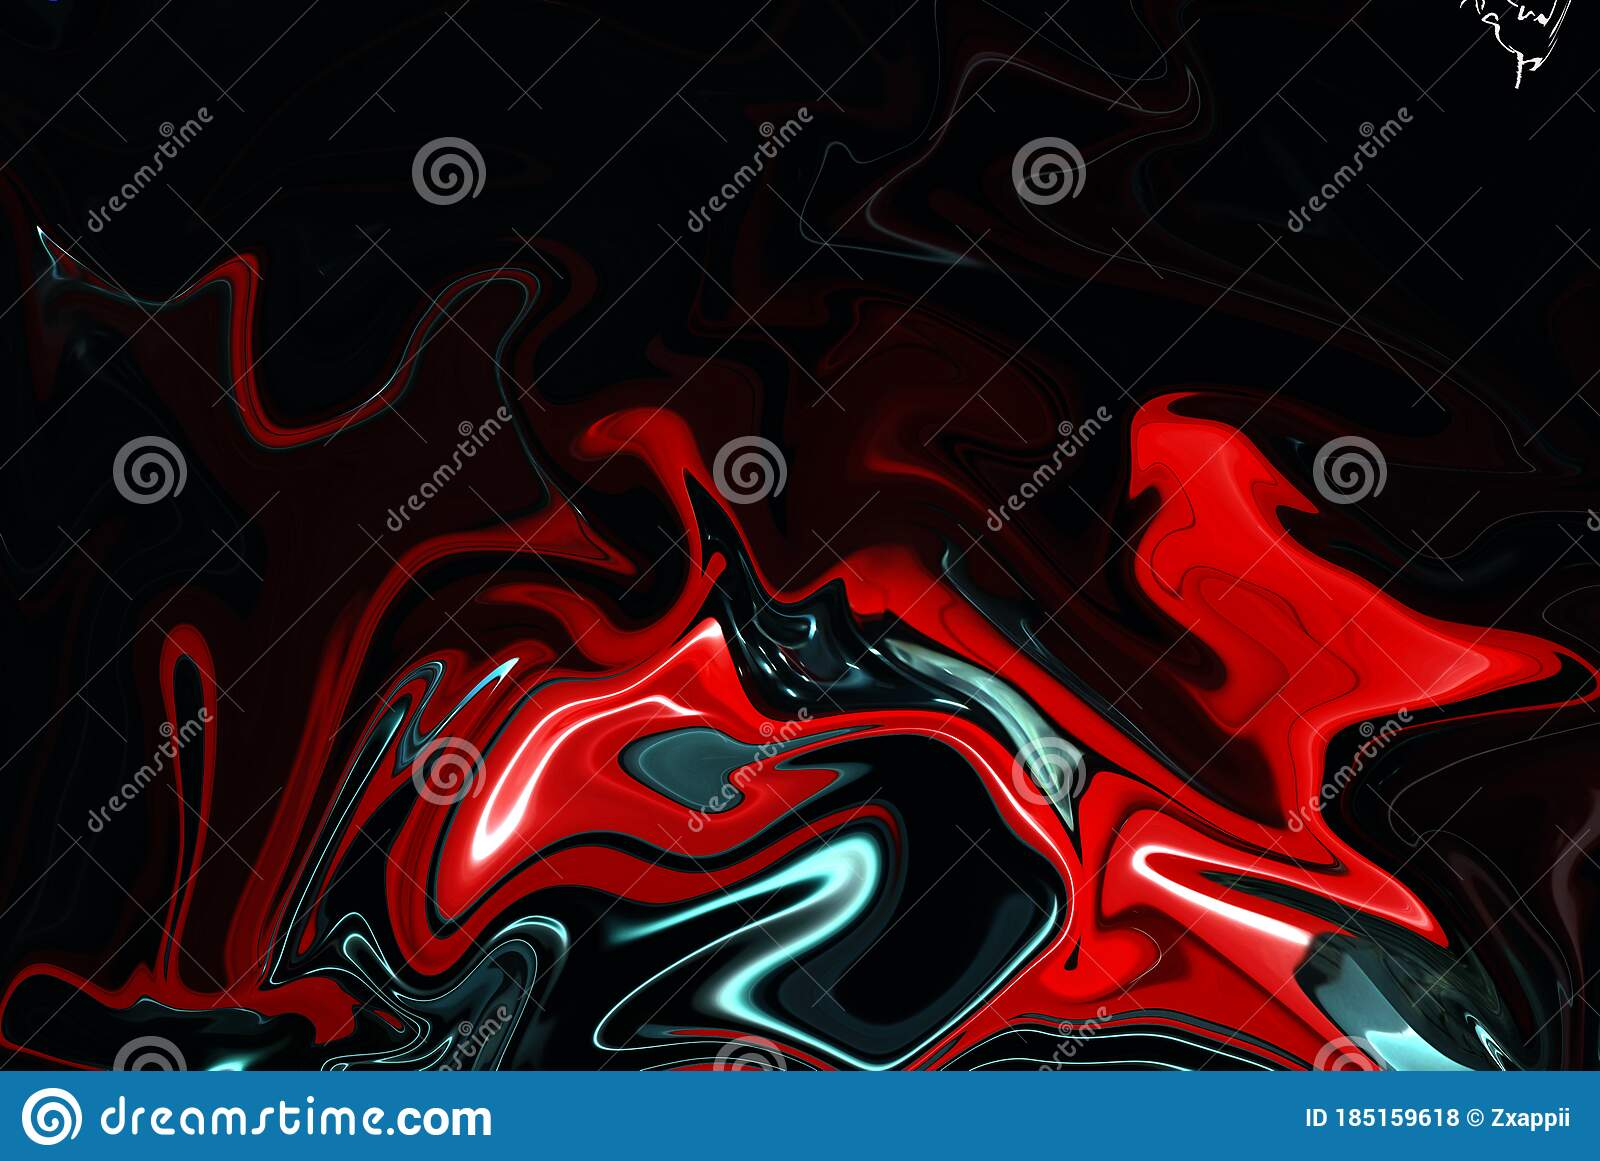 Red And Black Marble Pattern With High Resolution Can Be Used For Background Or Wallpaper Granite Marbling Stock Photo Image Of Ancient Floor 185159618